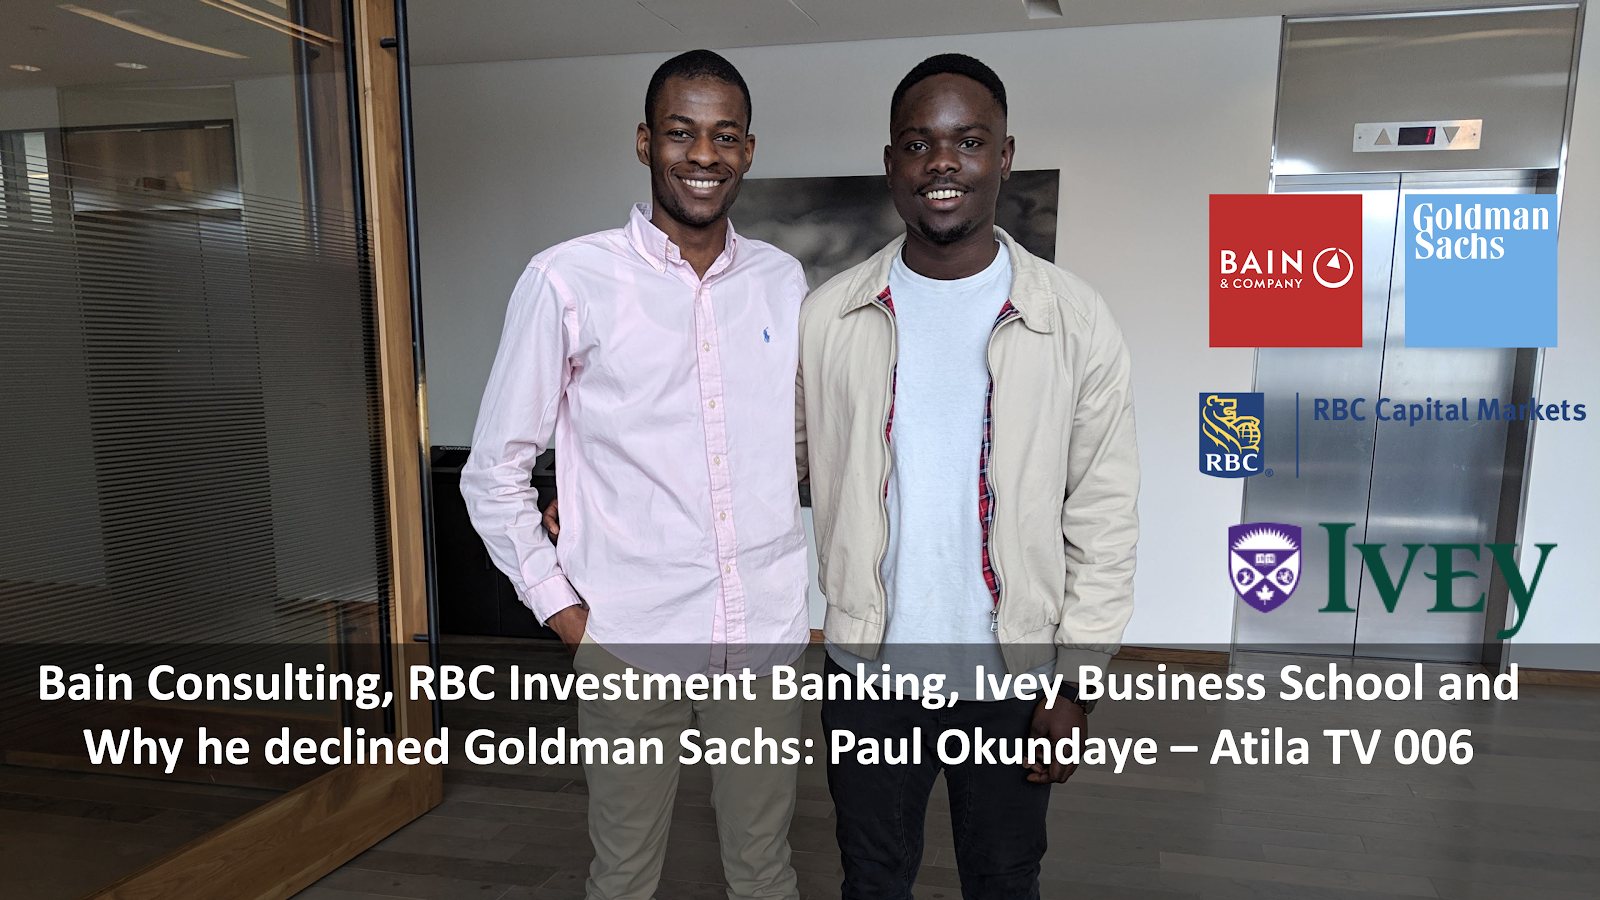 Bain Consulting, RBC Investment Banking, Ivey Business